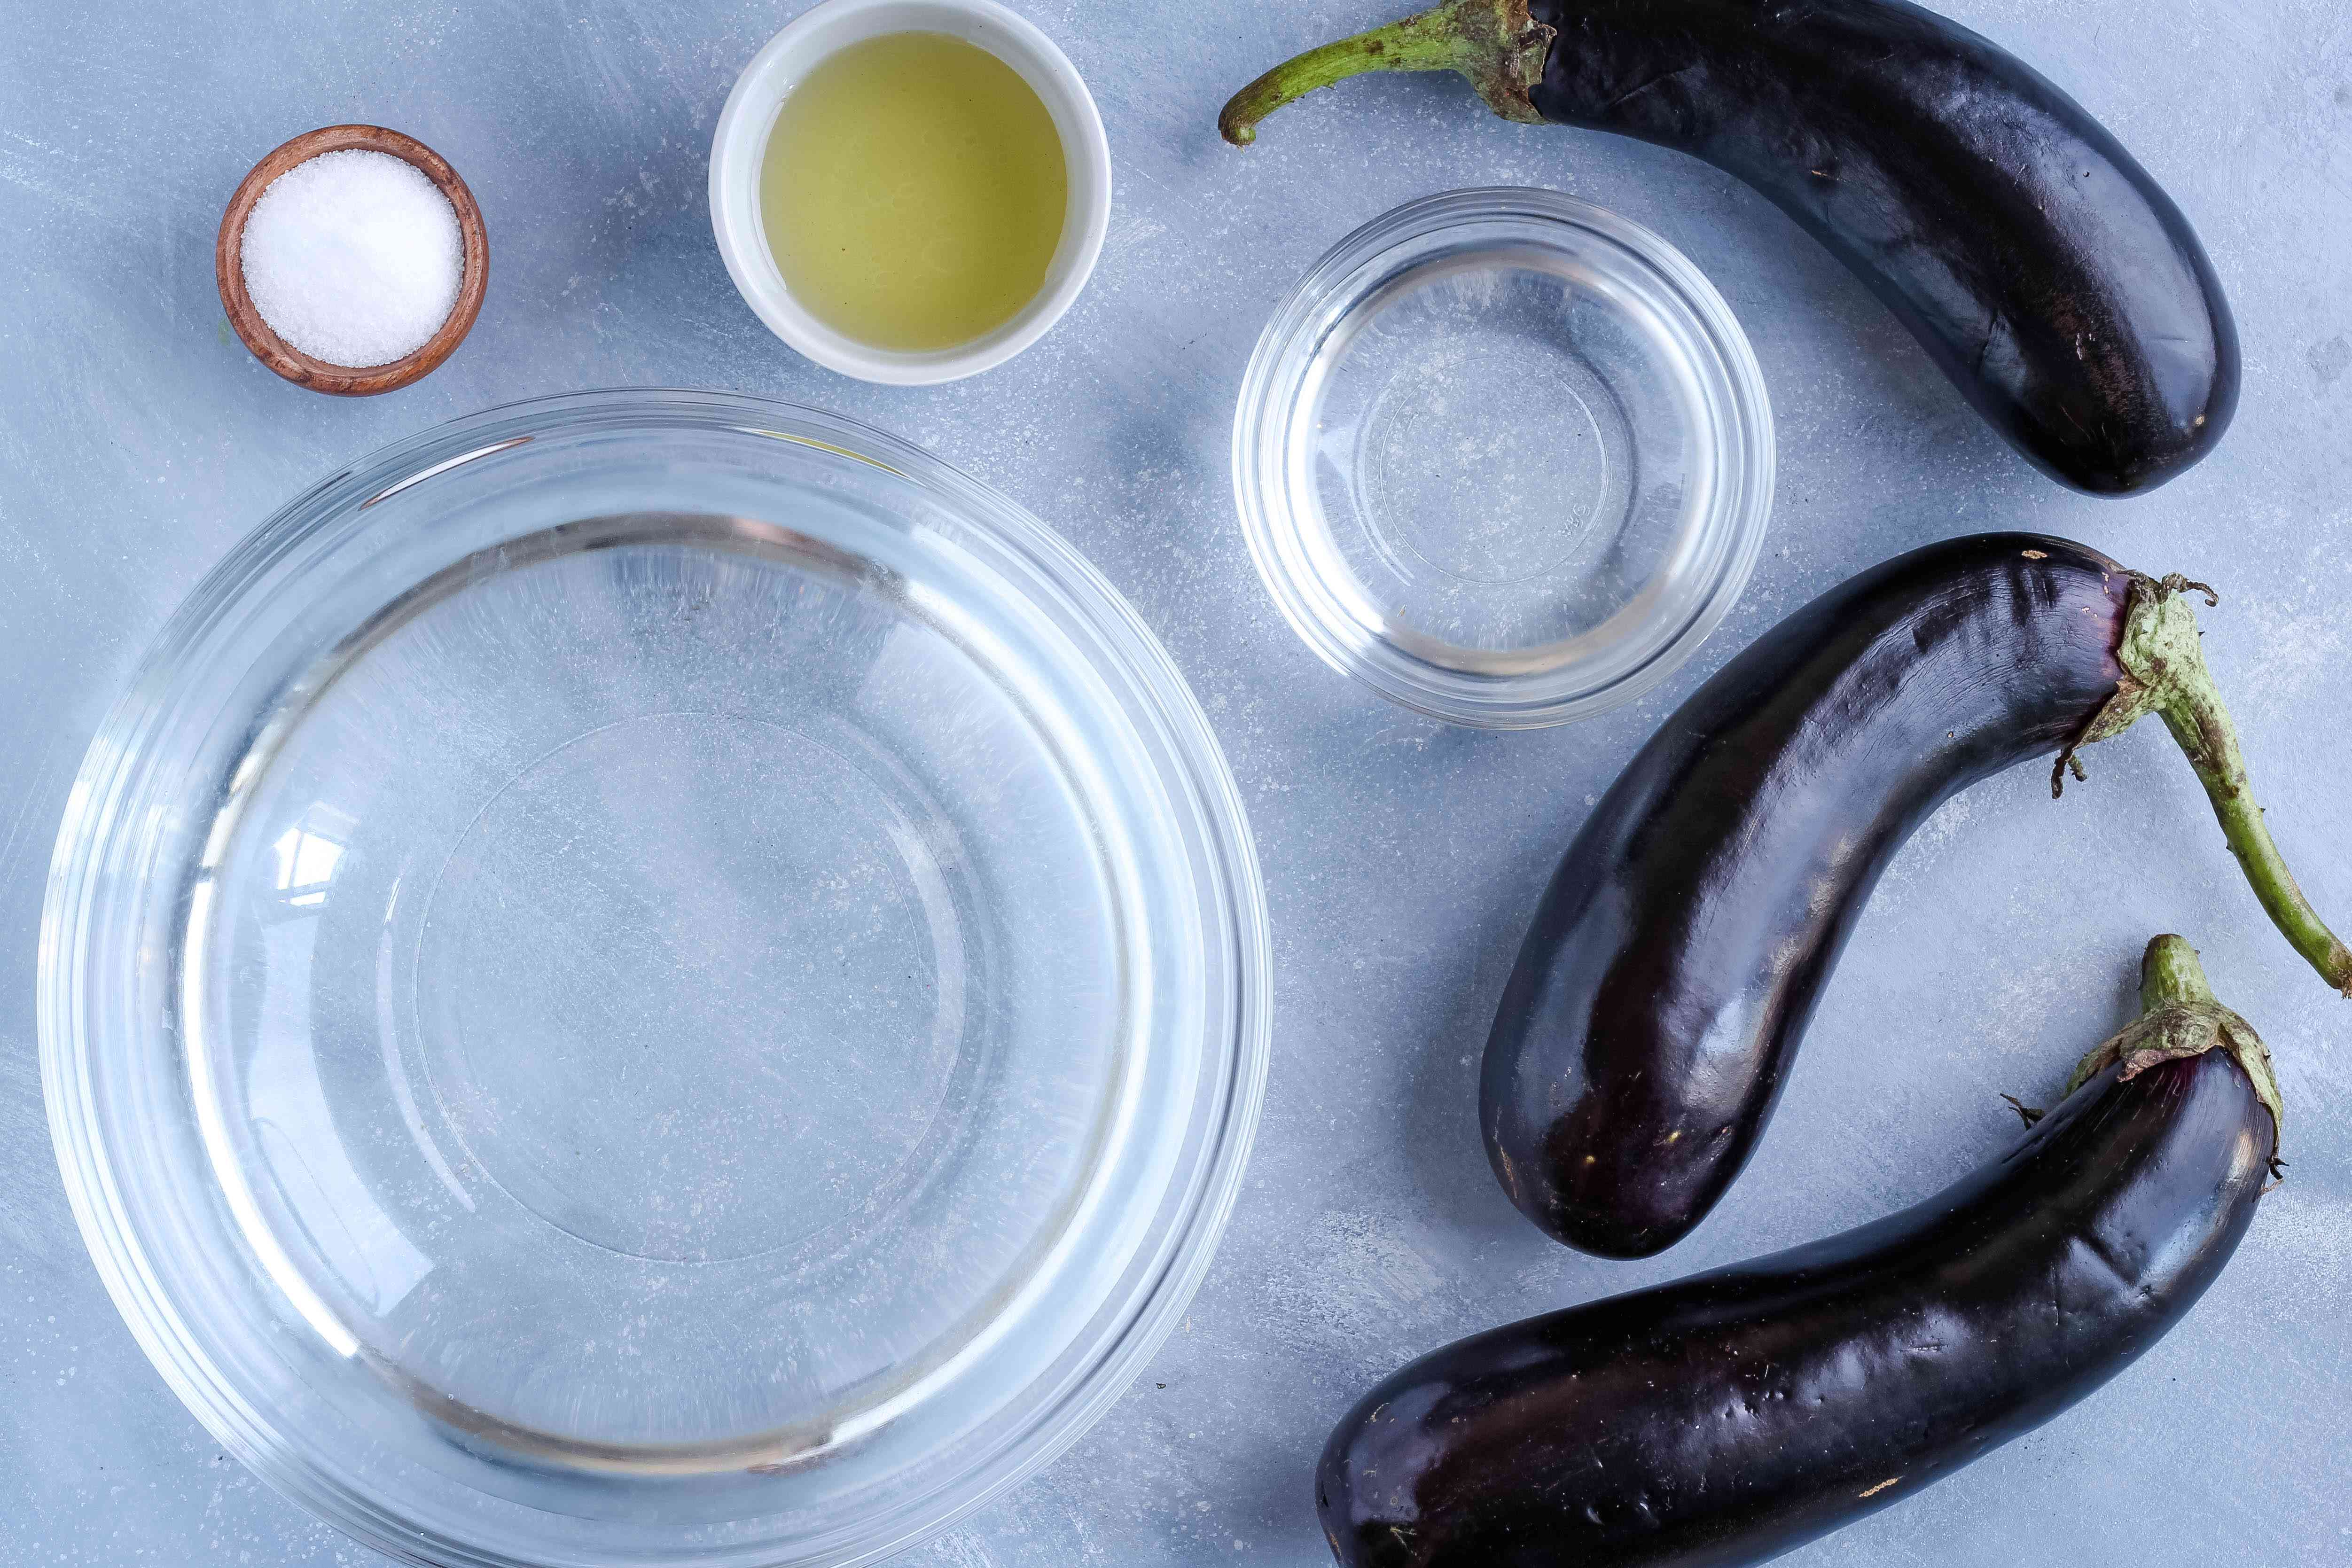 Ingredients for making grilled eggplant